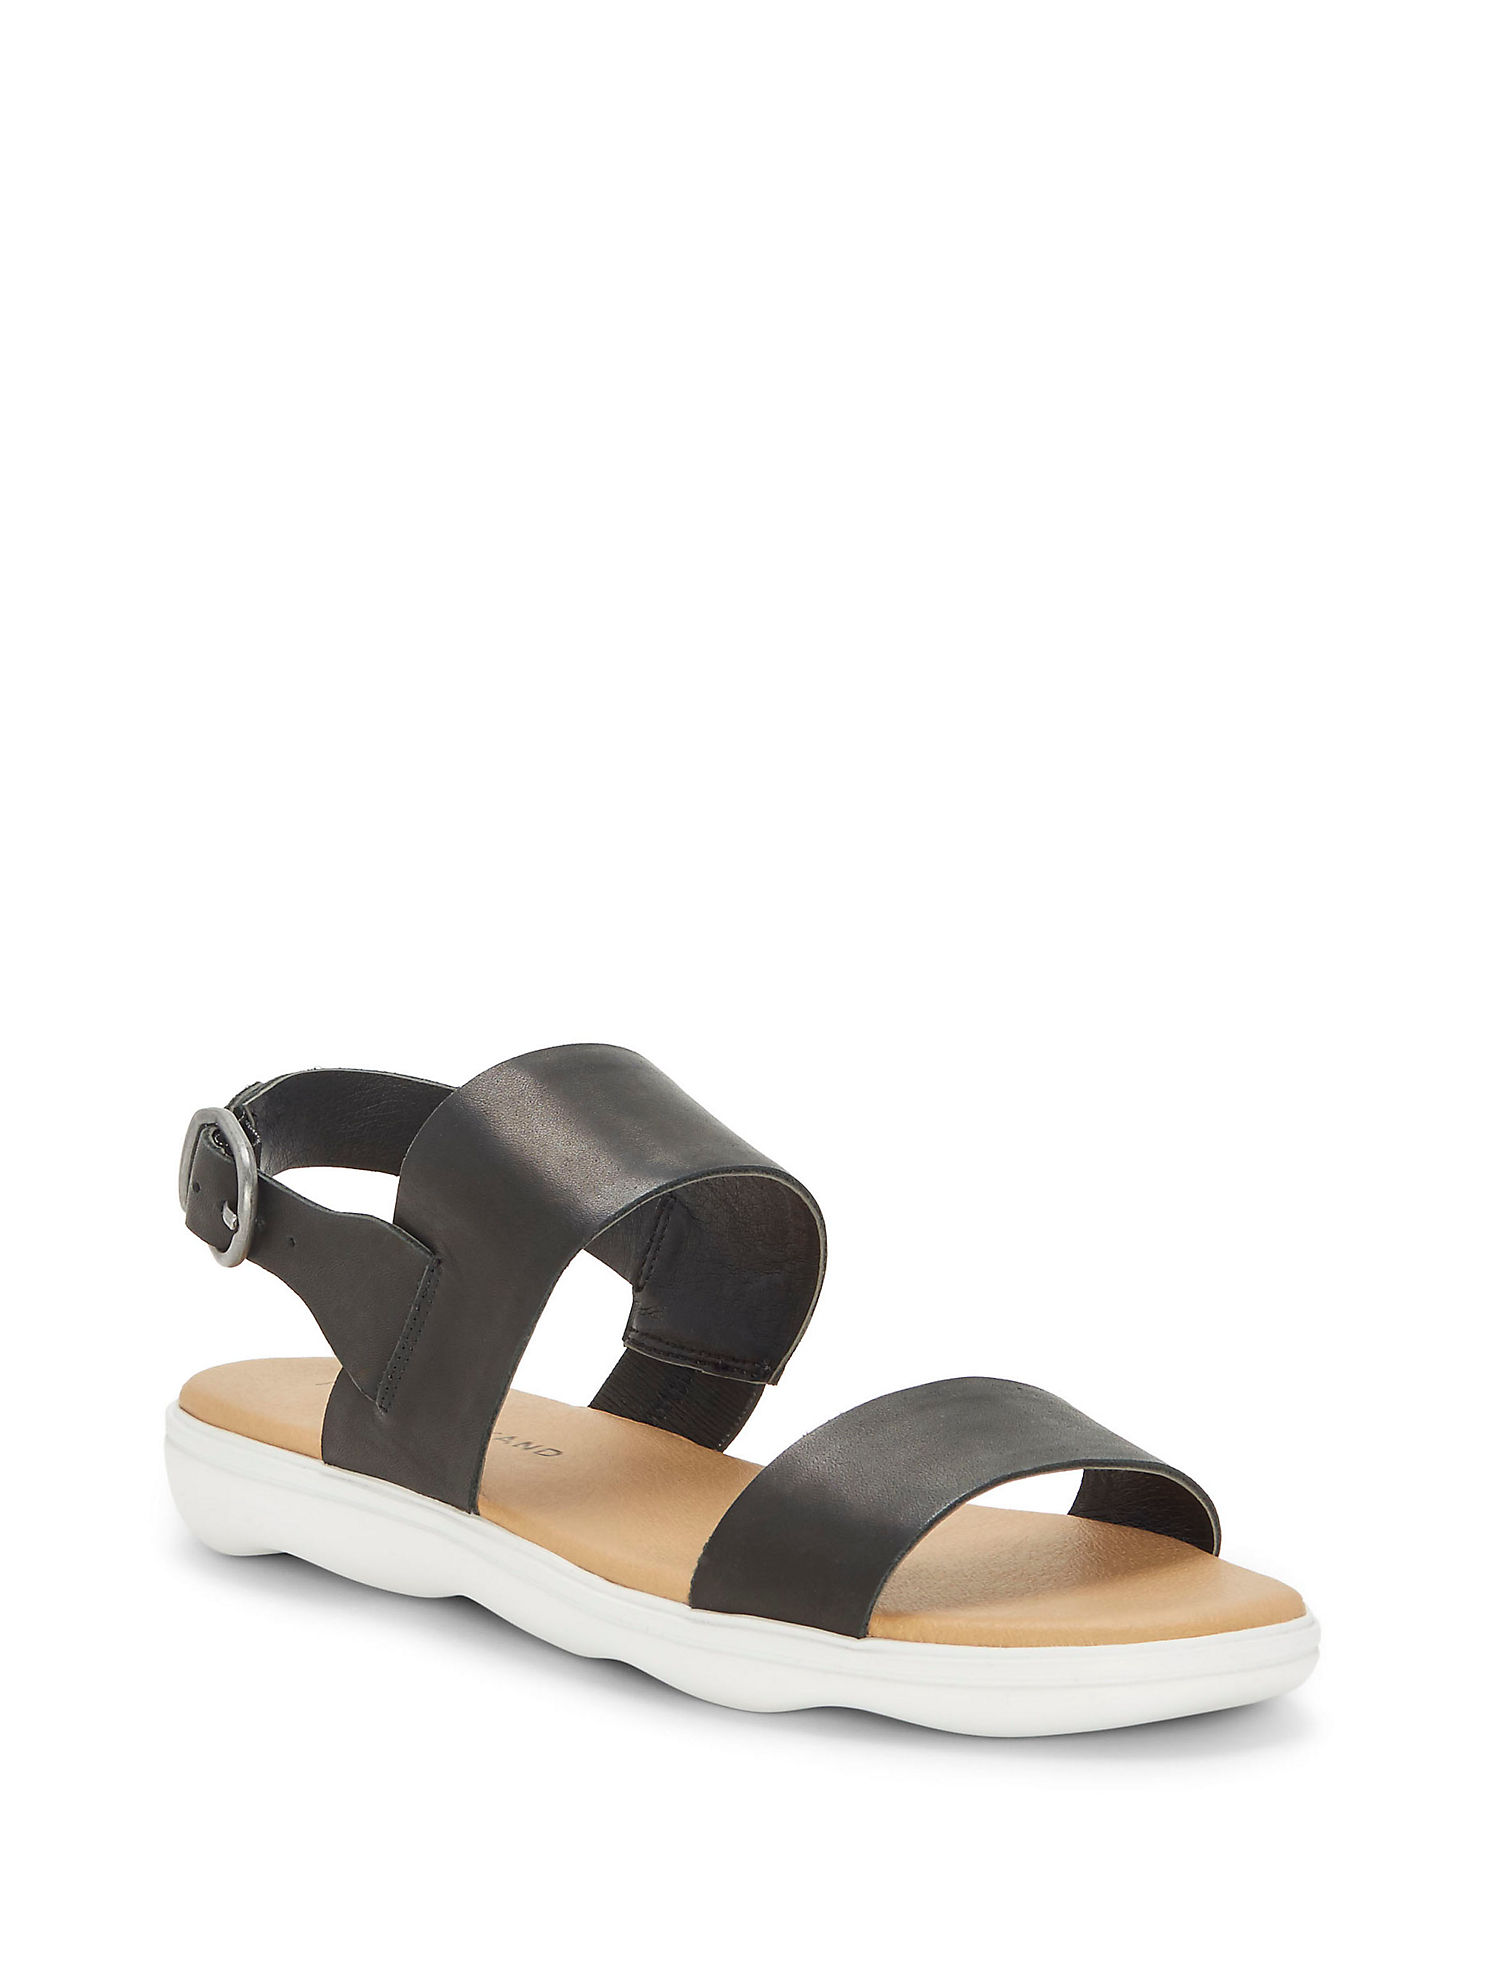 Lucky Brand Madgey Sandals aqNvzWR